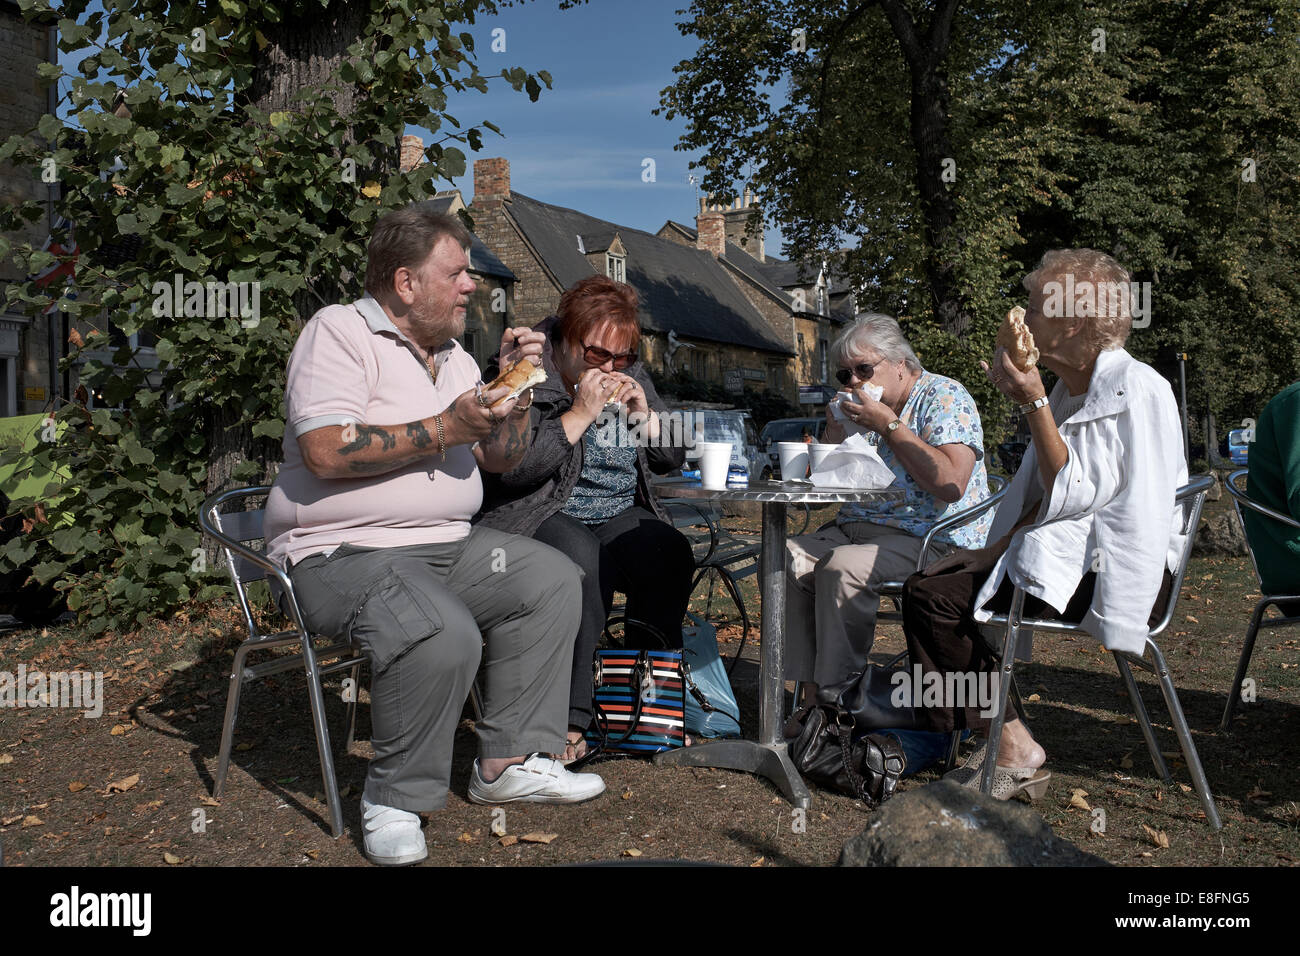 Group of mature English people tucking into unhealthy junk food consisting of burgers and hot dogs at an outdoor - Stock Image